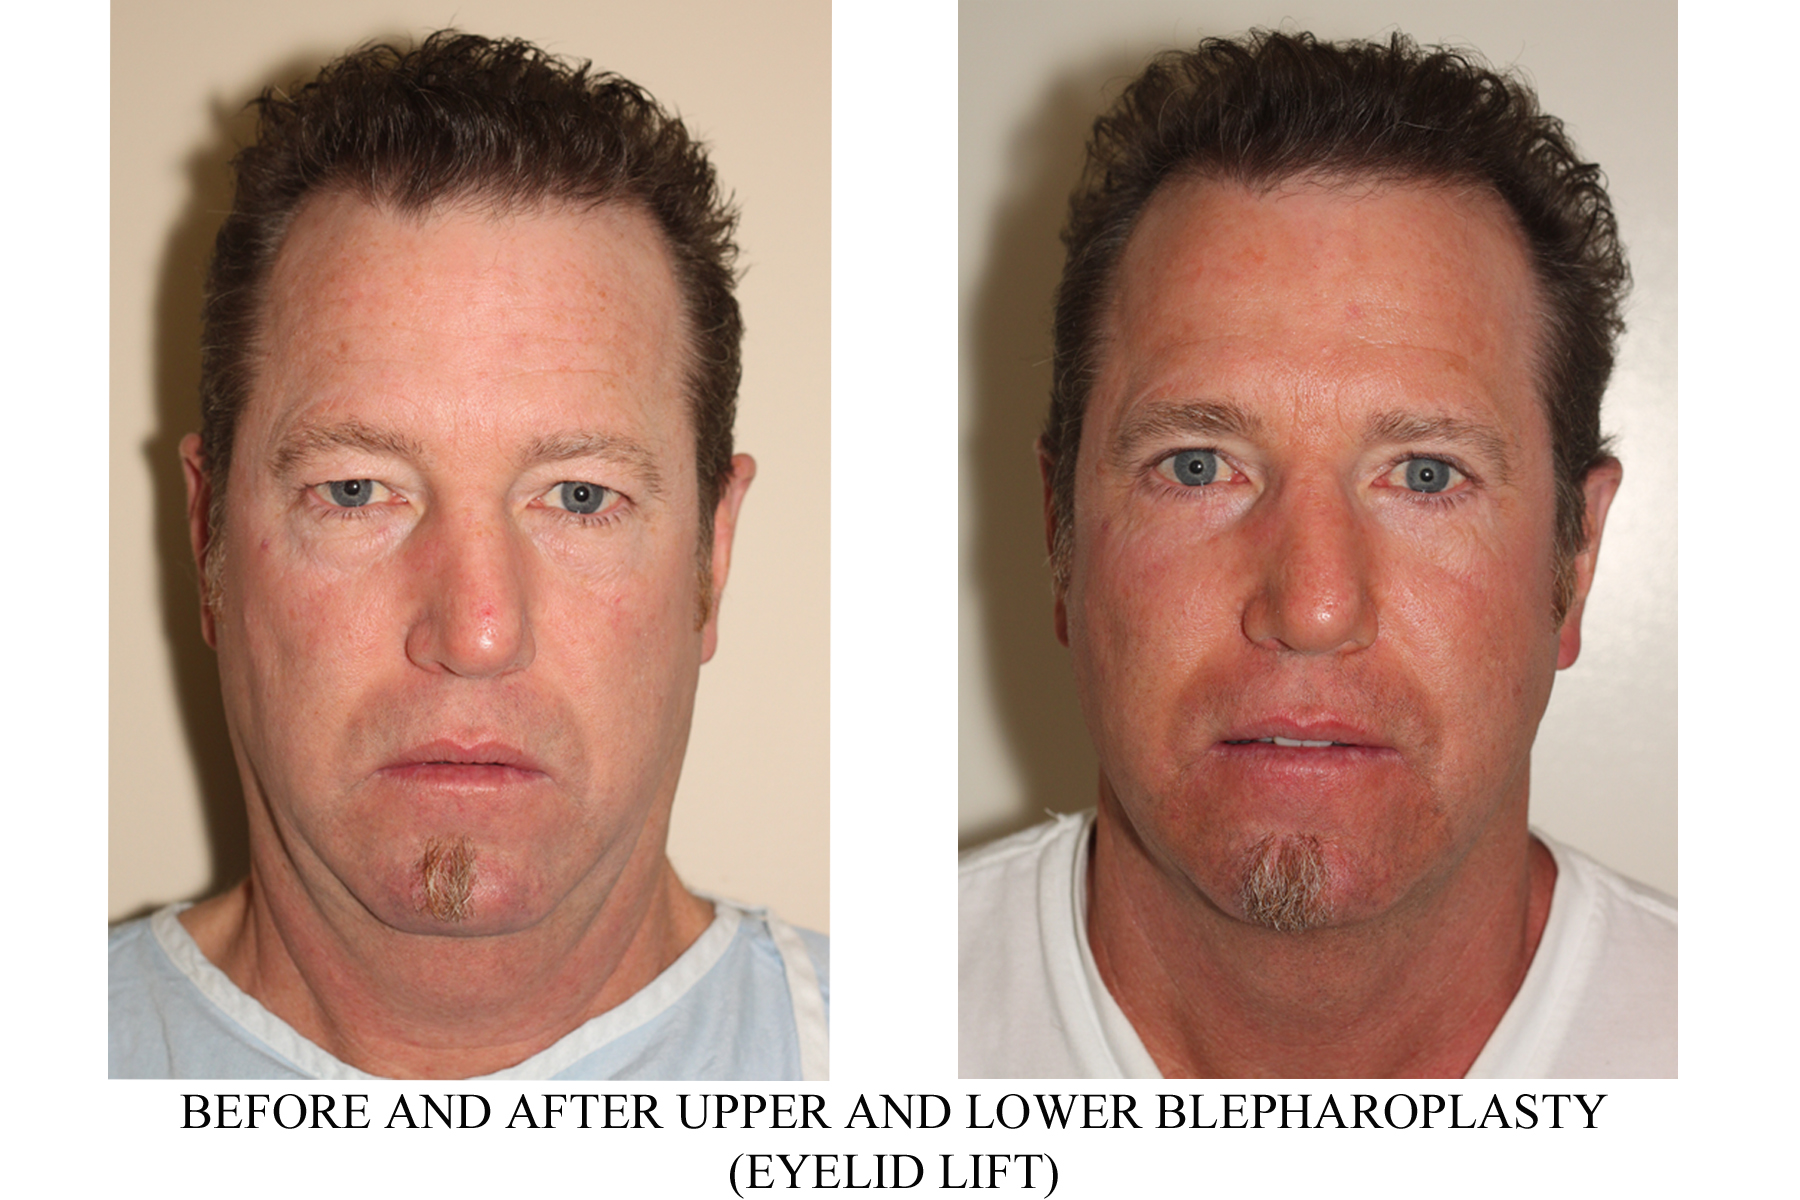 Before and After Upper and Lower Blepharoplasty - Dr. Andrew B. Denton, Vancouver, B.C.